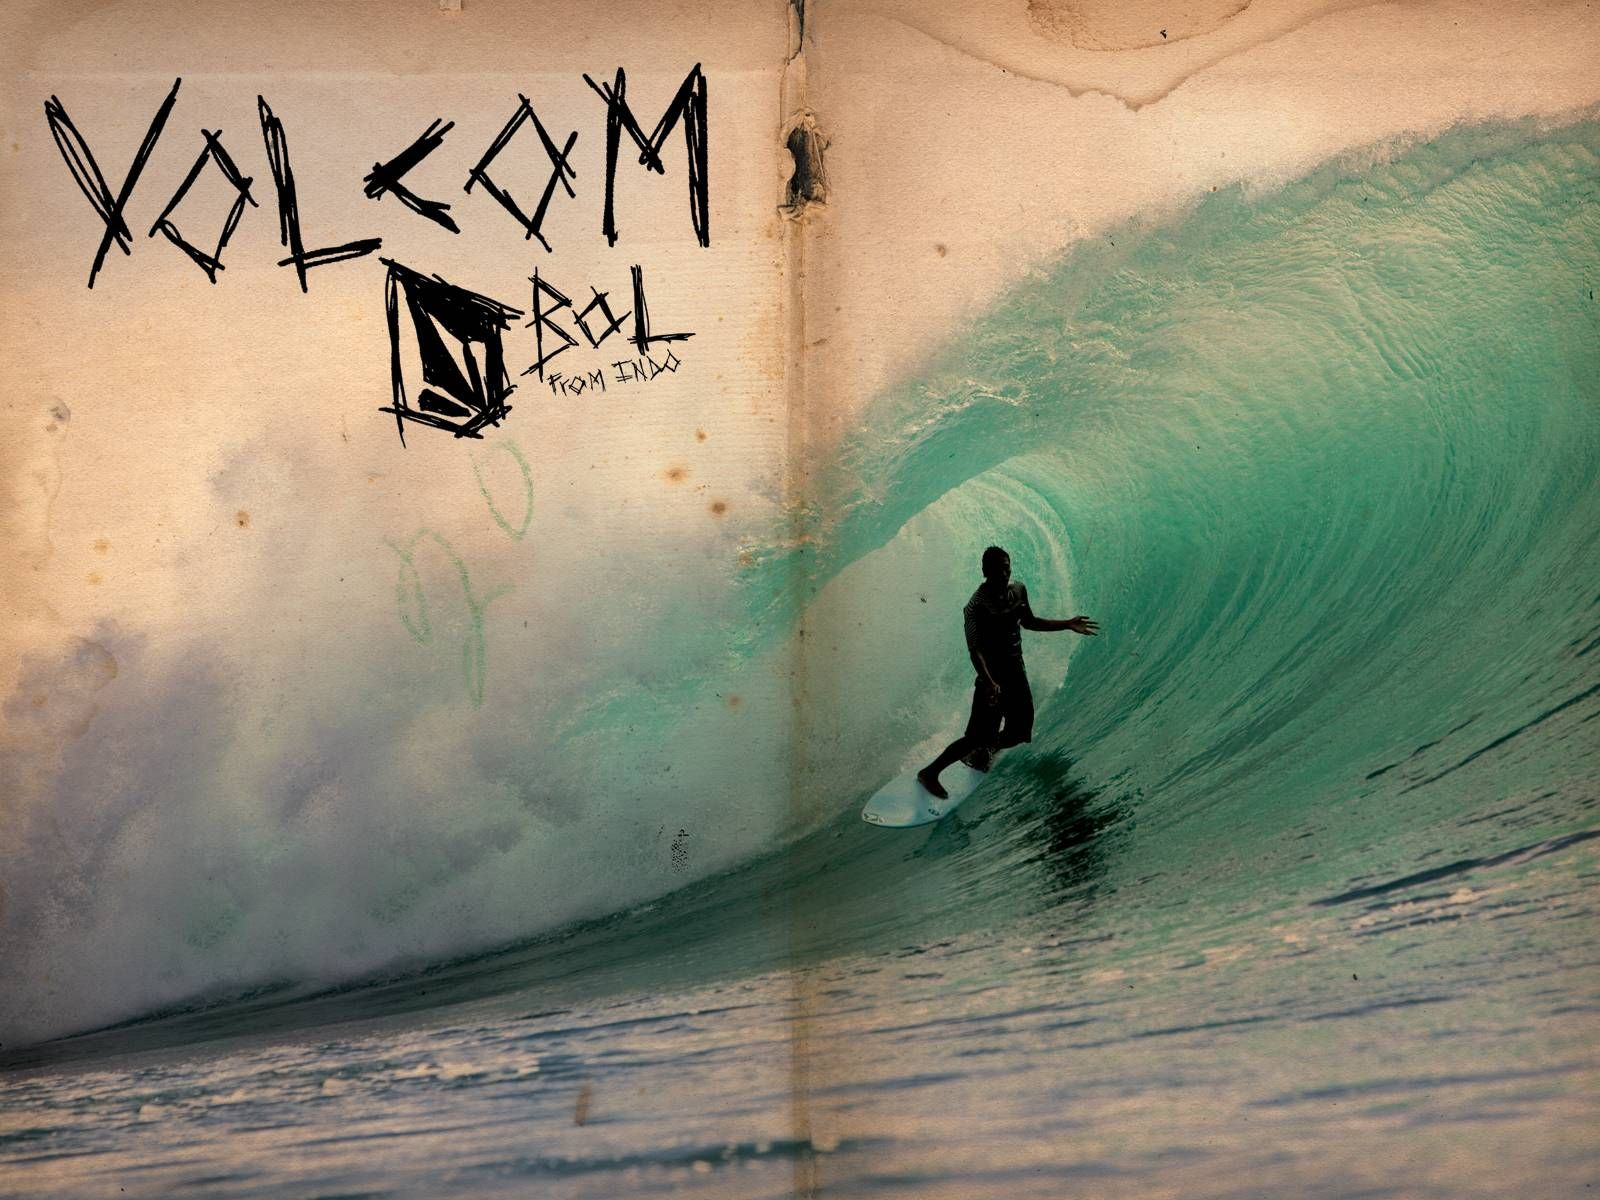 volcom wallpapers for desktop amazing volcom wallpapers